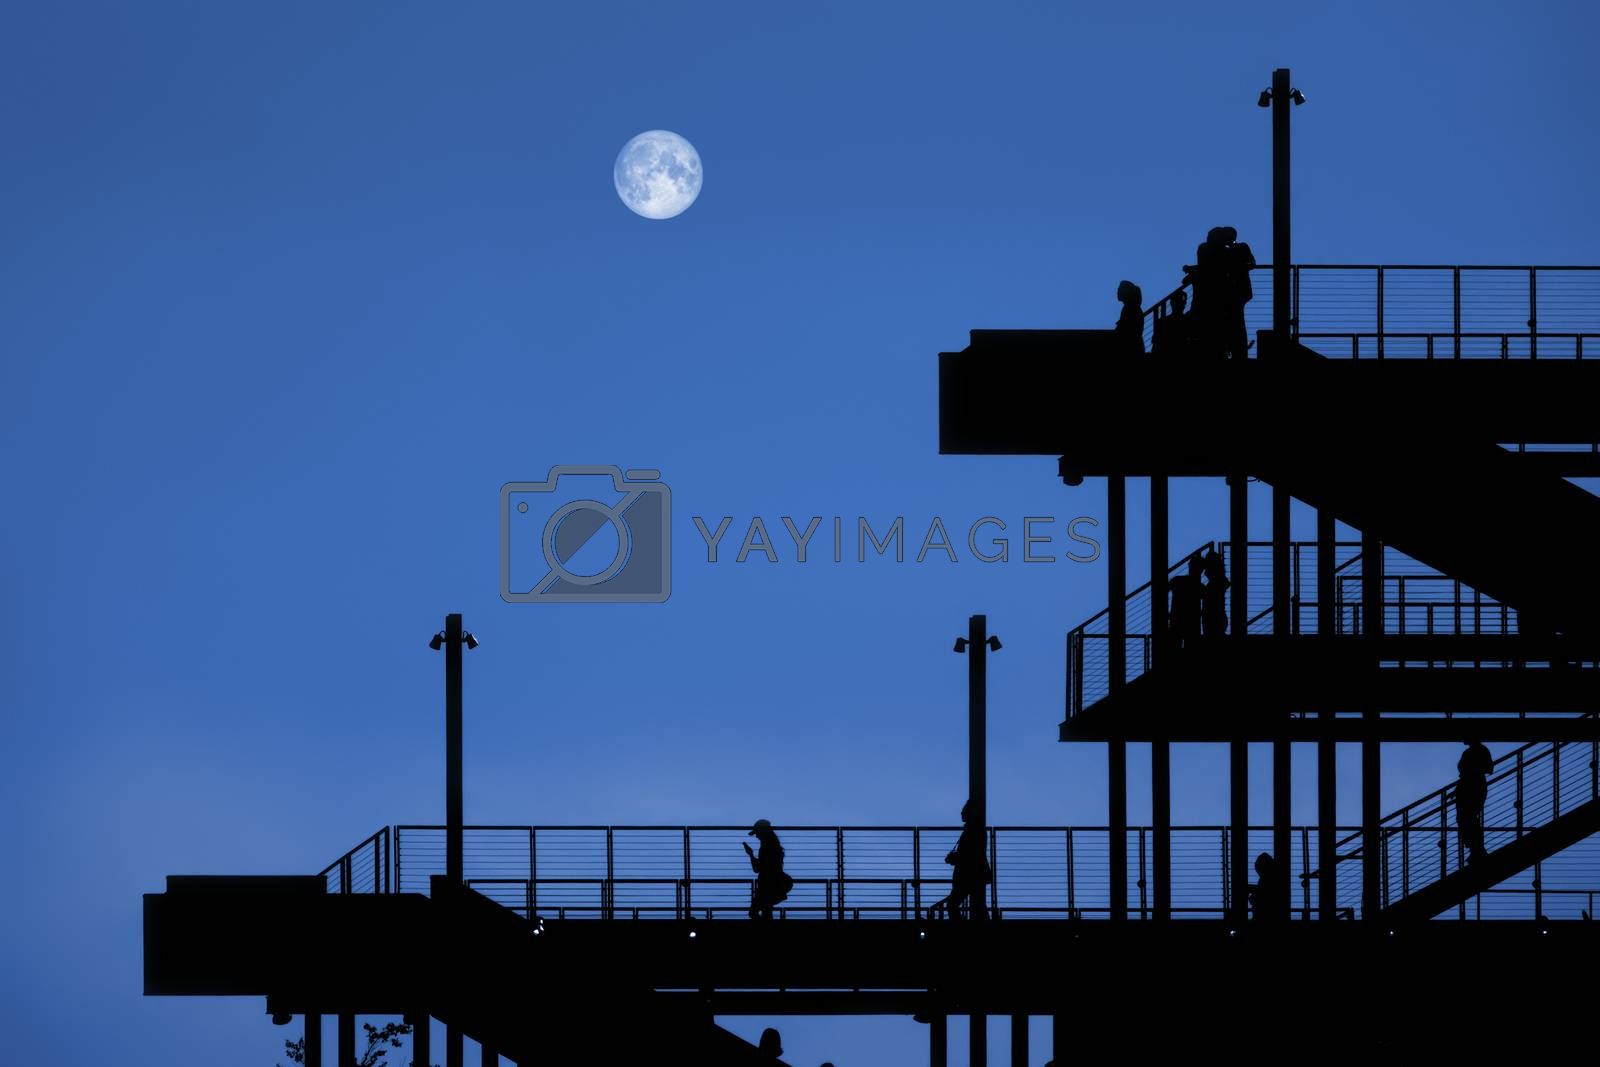 a passage of steel with people by night with moon by magann